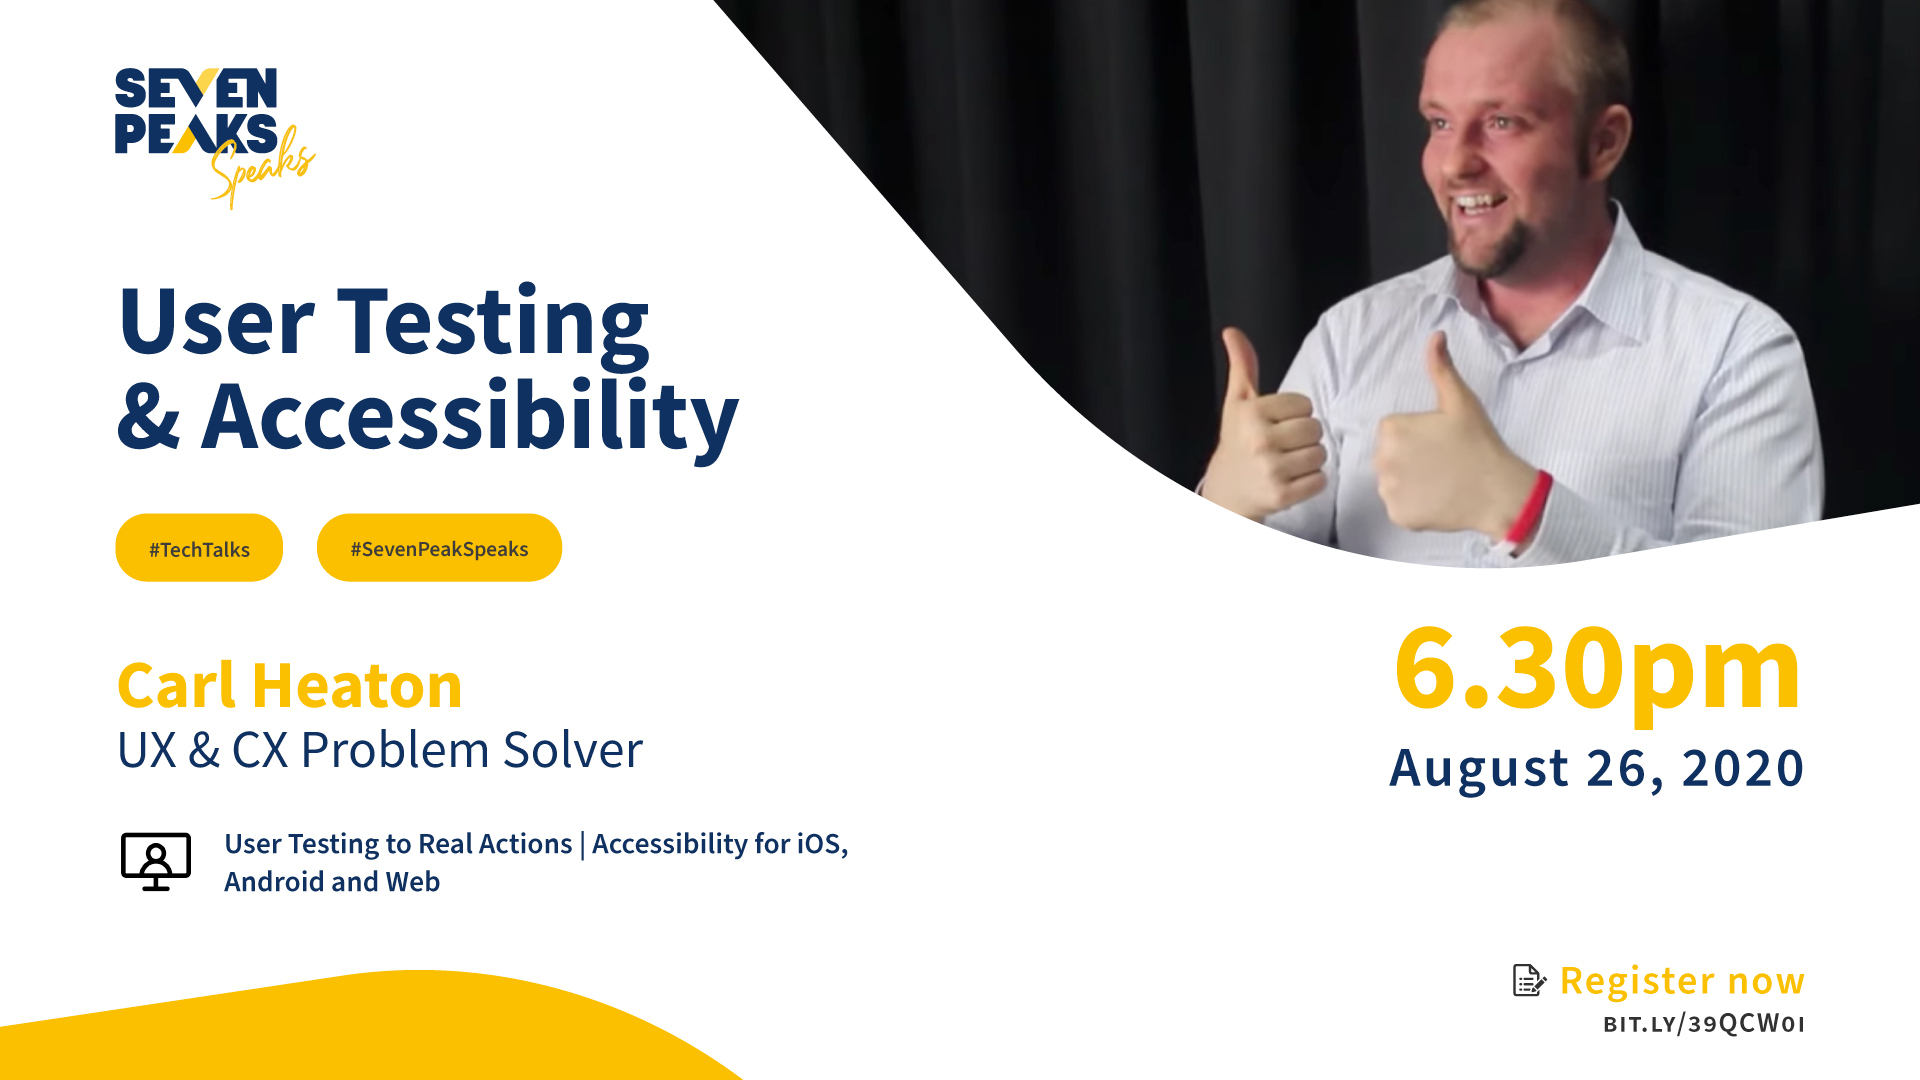 Seven Peaks Speaks User Testing & Accessibility